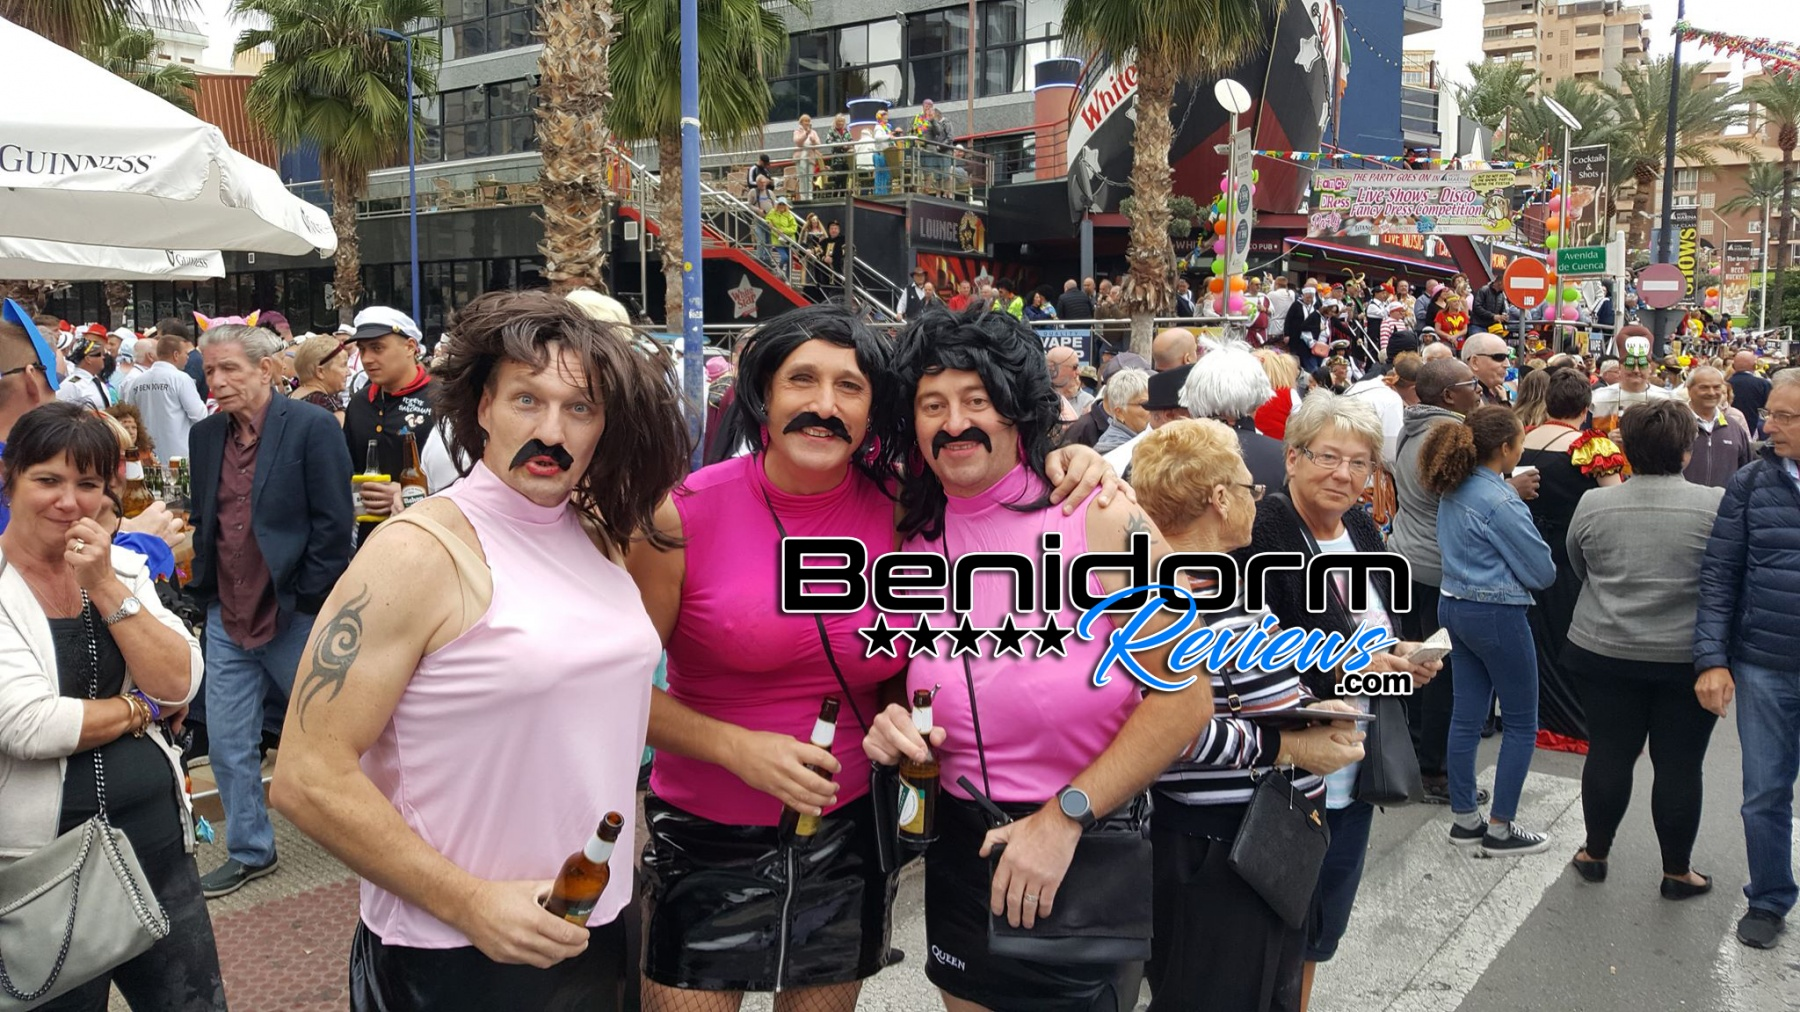 Benidorm-Fiestas-2019-Fancy-Dress-204